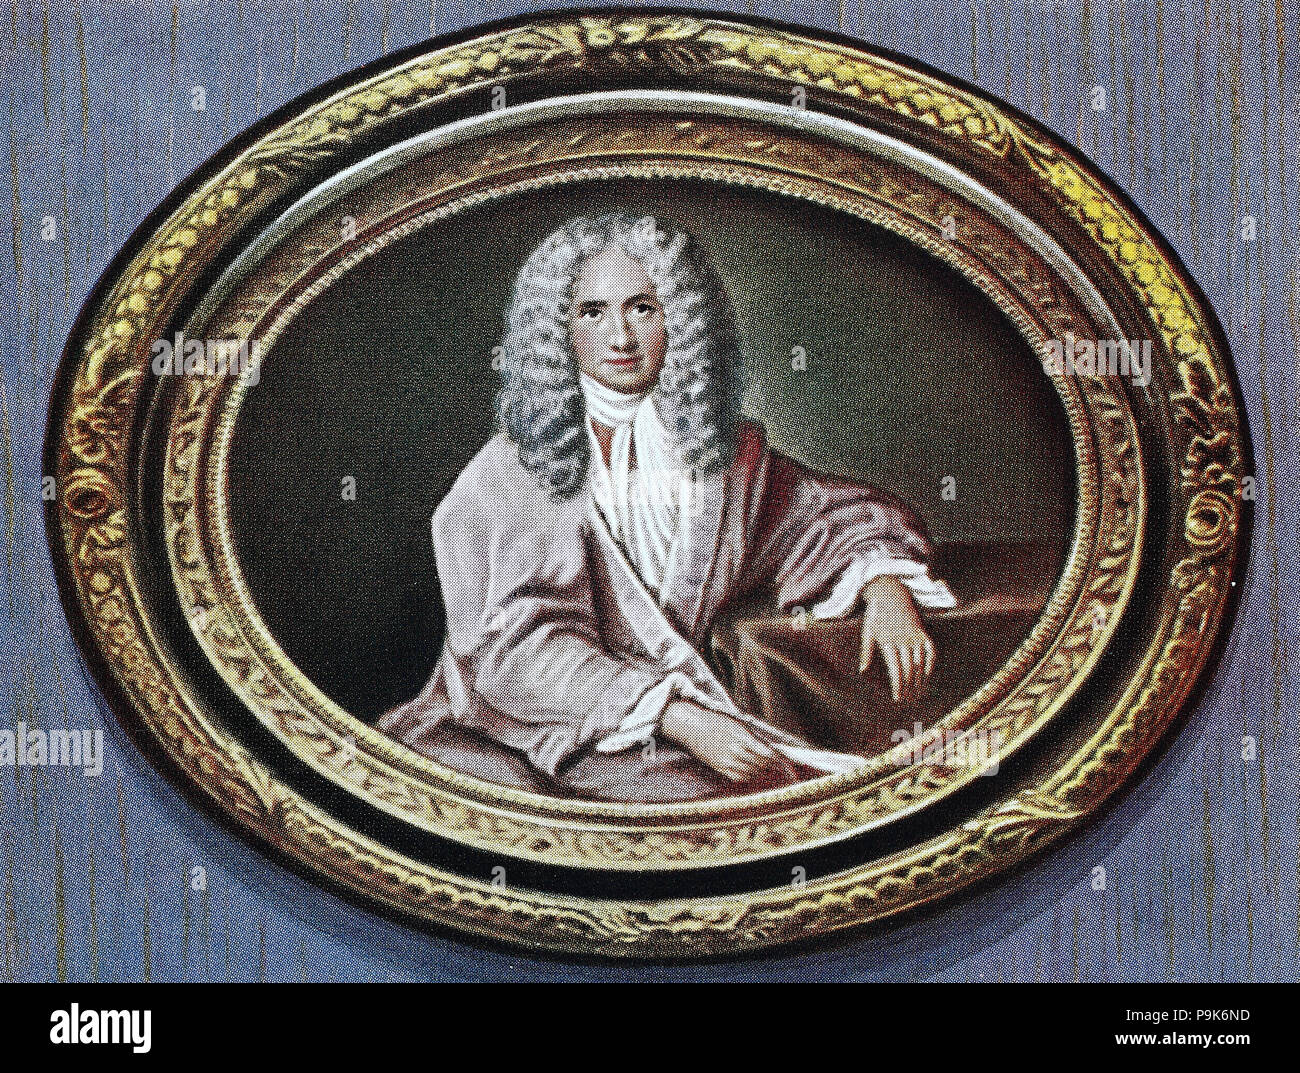 François-Marie Arouet, 21 November 1694 – 30 May 1778, known by his nom de plume Voltaire, was a French Enlightenment writer, historian and philosopher famous for his wit, digital improved reproduction of an original print from the year 1900 - Stock Image